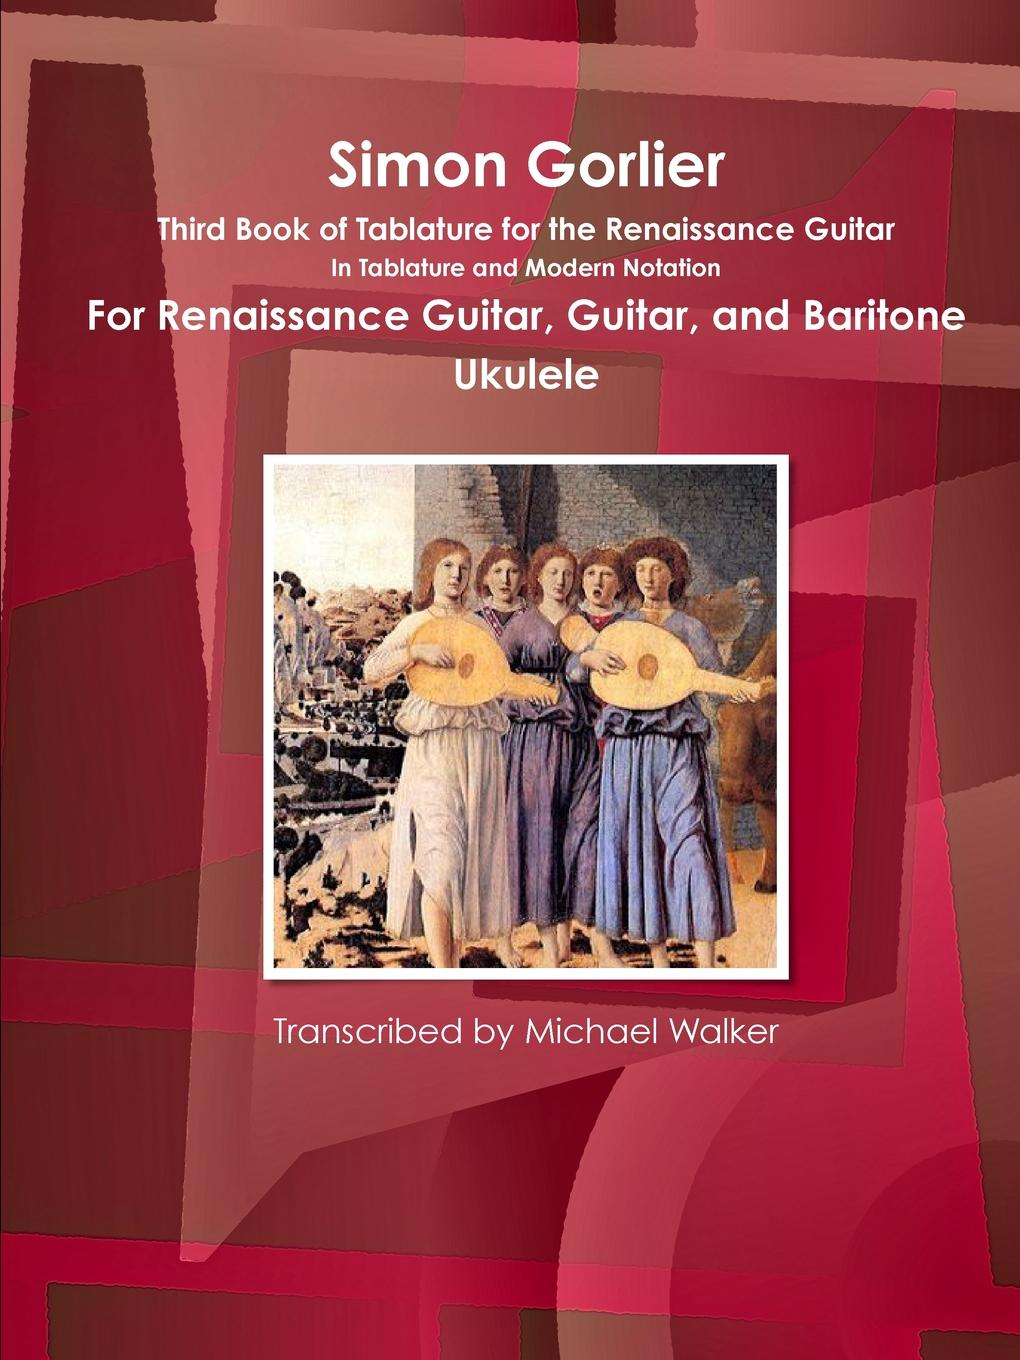 Michael Walker Simon Gorlier Third Book of Tablature for the Renaissance Guitar In Tablature and Modern Notation For Renaissance Guitar, Guitar, and Baritone Ukulele simon gray the common pursuit a play